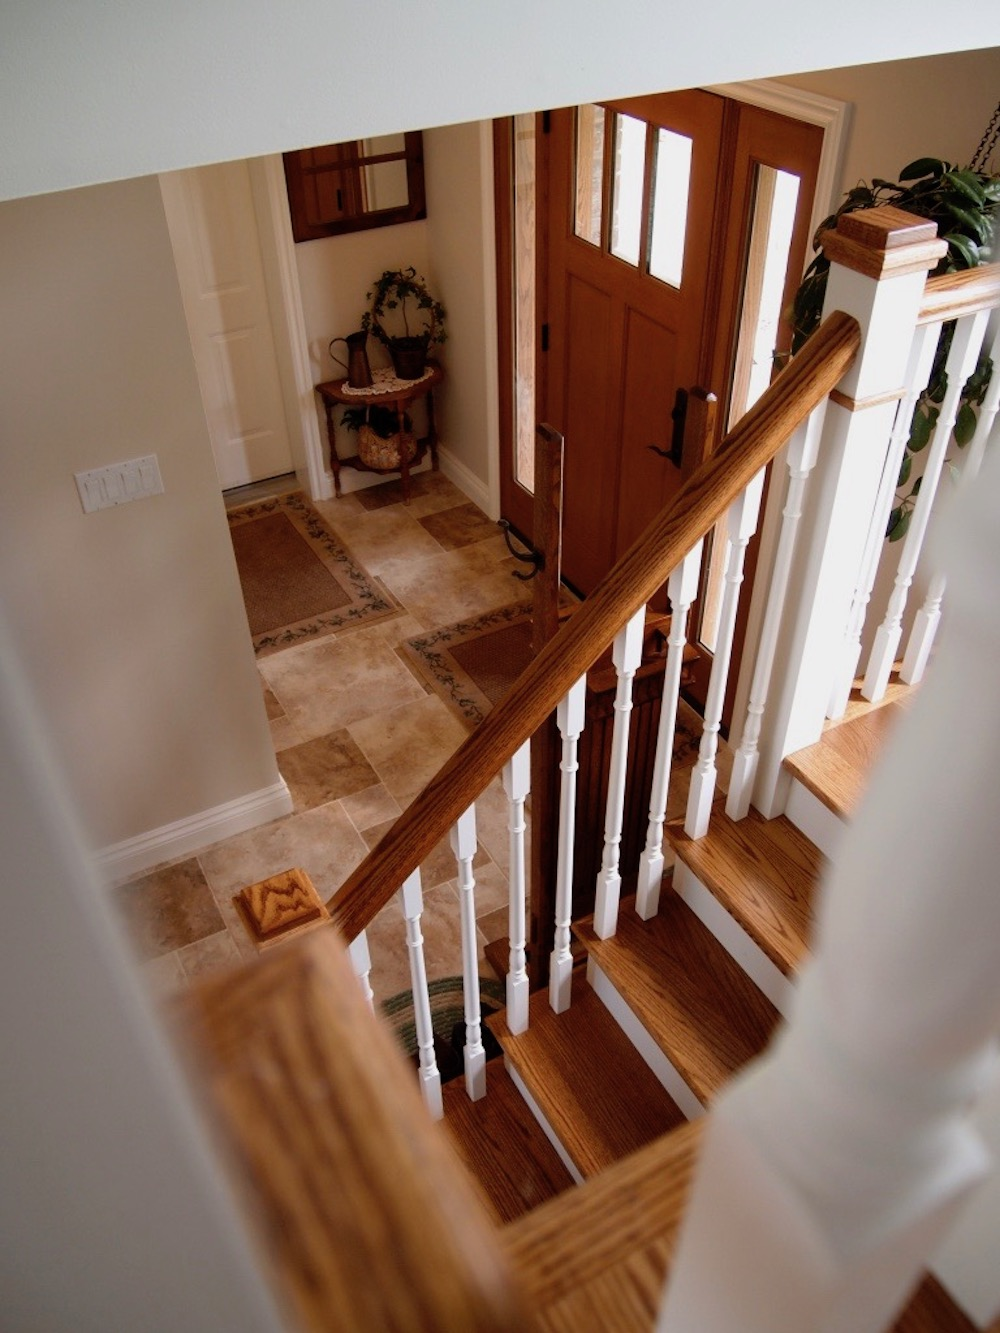 oak stair white pickets craftsman door.jpeg